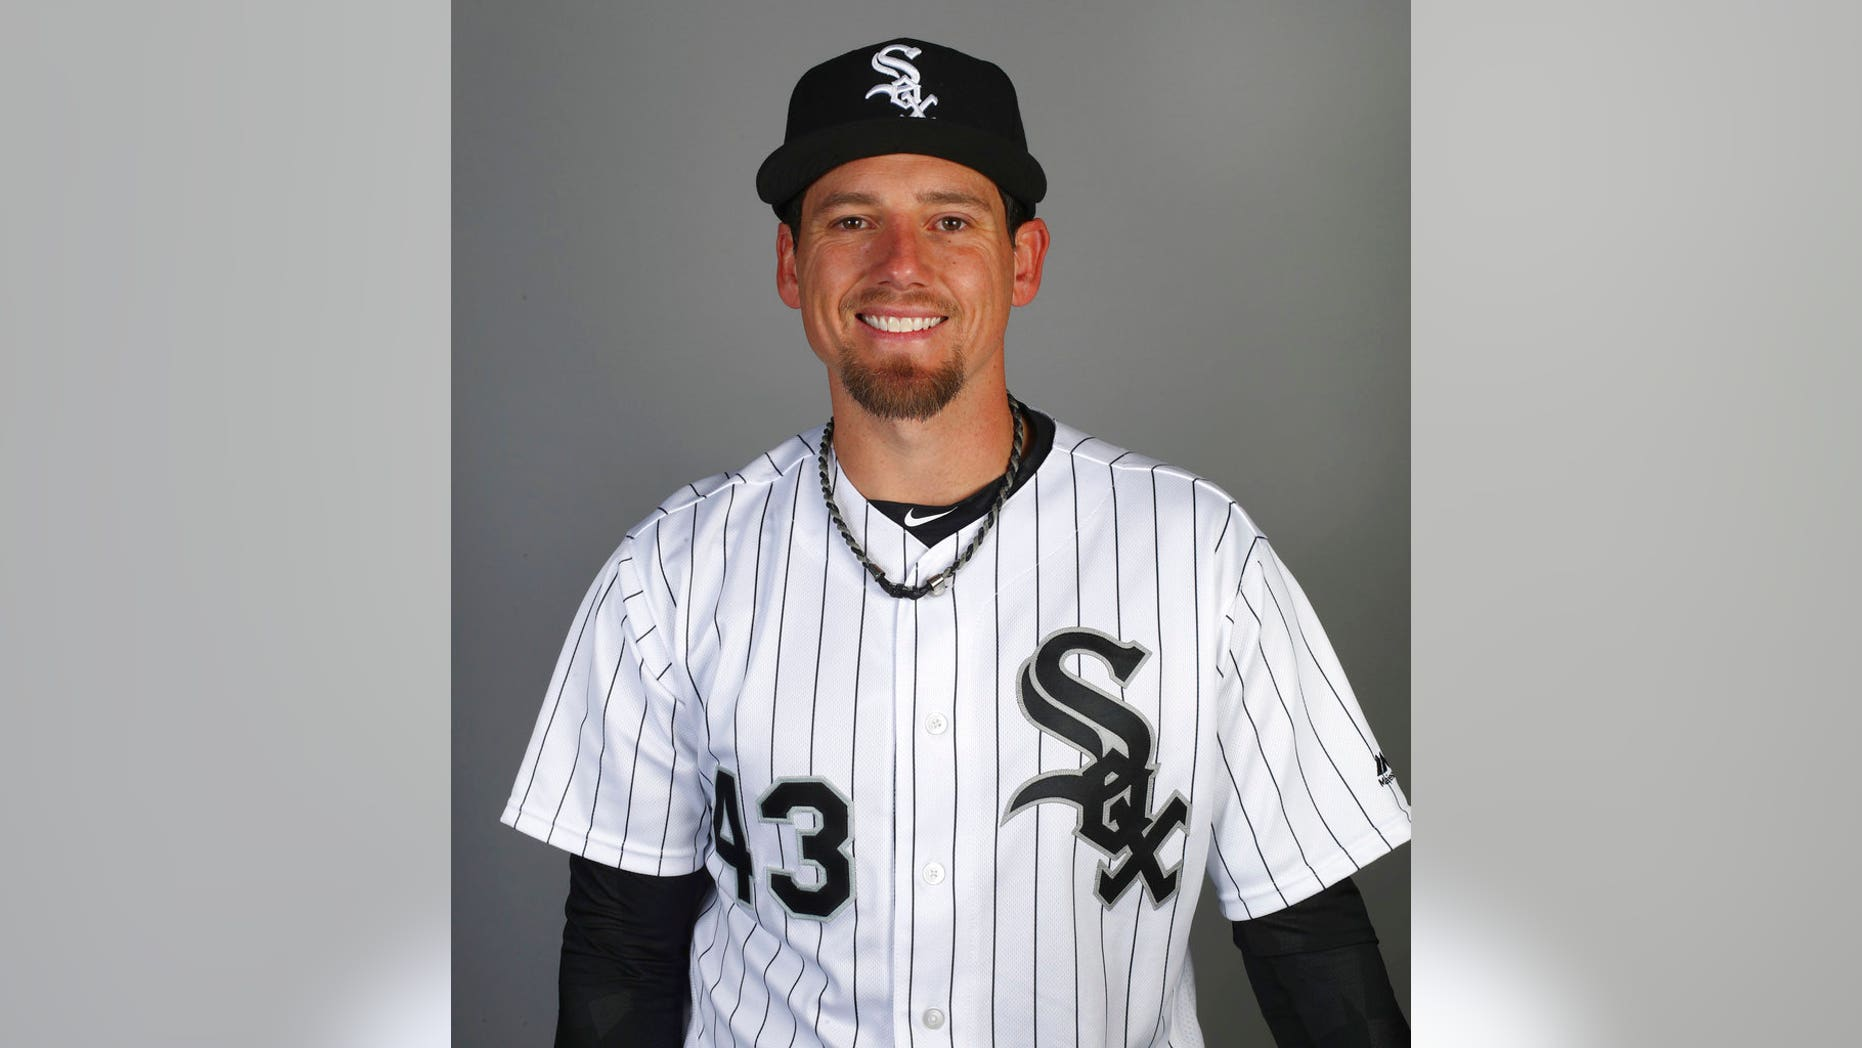 White Sox pitcher Danny Farquhar, age 31, suffered a brain hemorrhage during Friday night's game in Chicago and remains hospitalized in stable but critical condition, officials said.